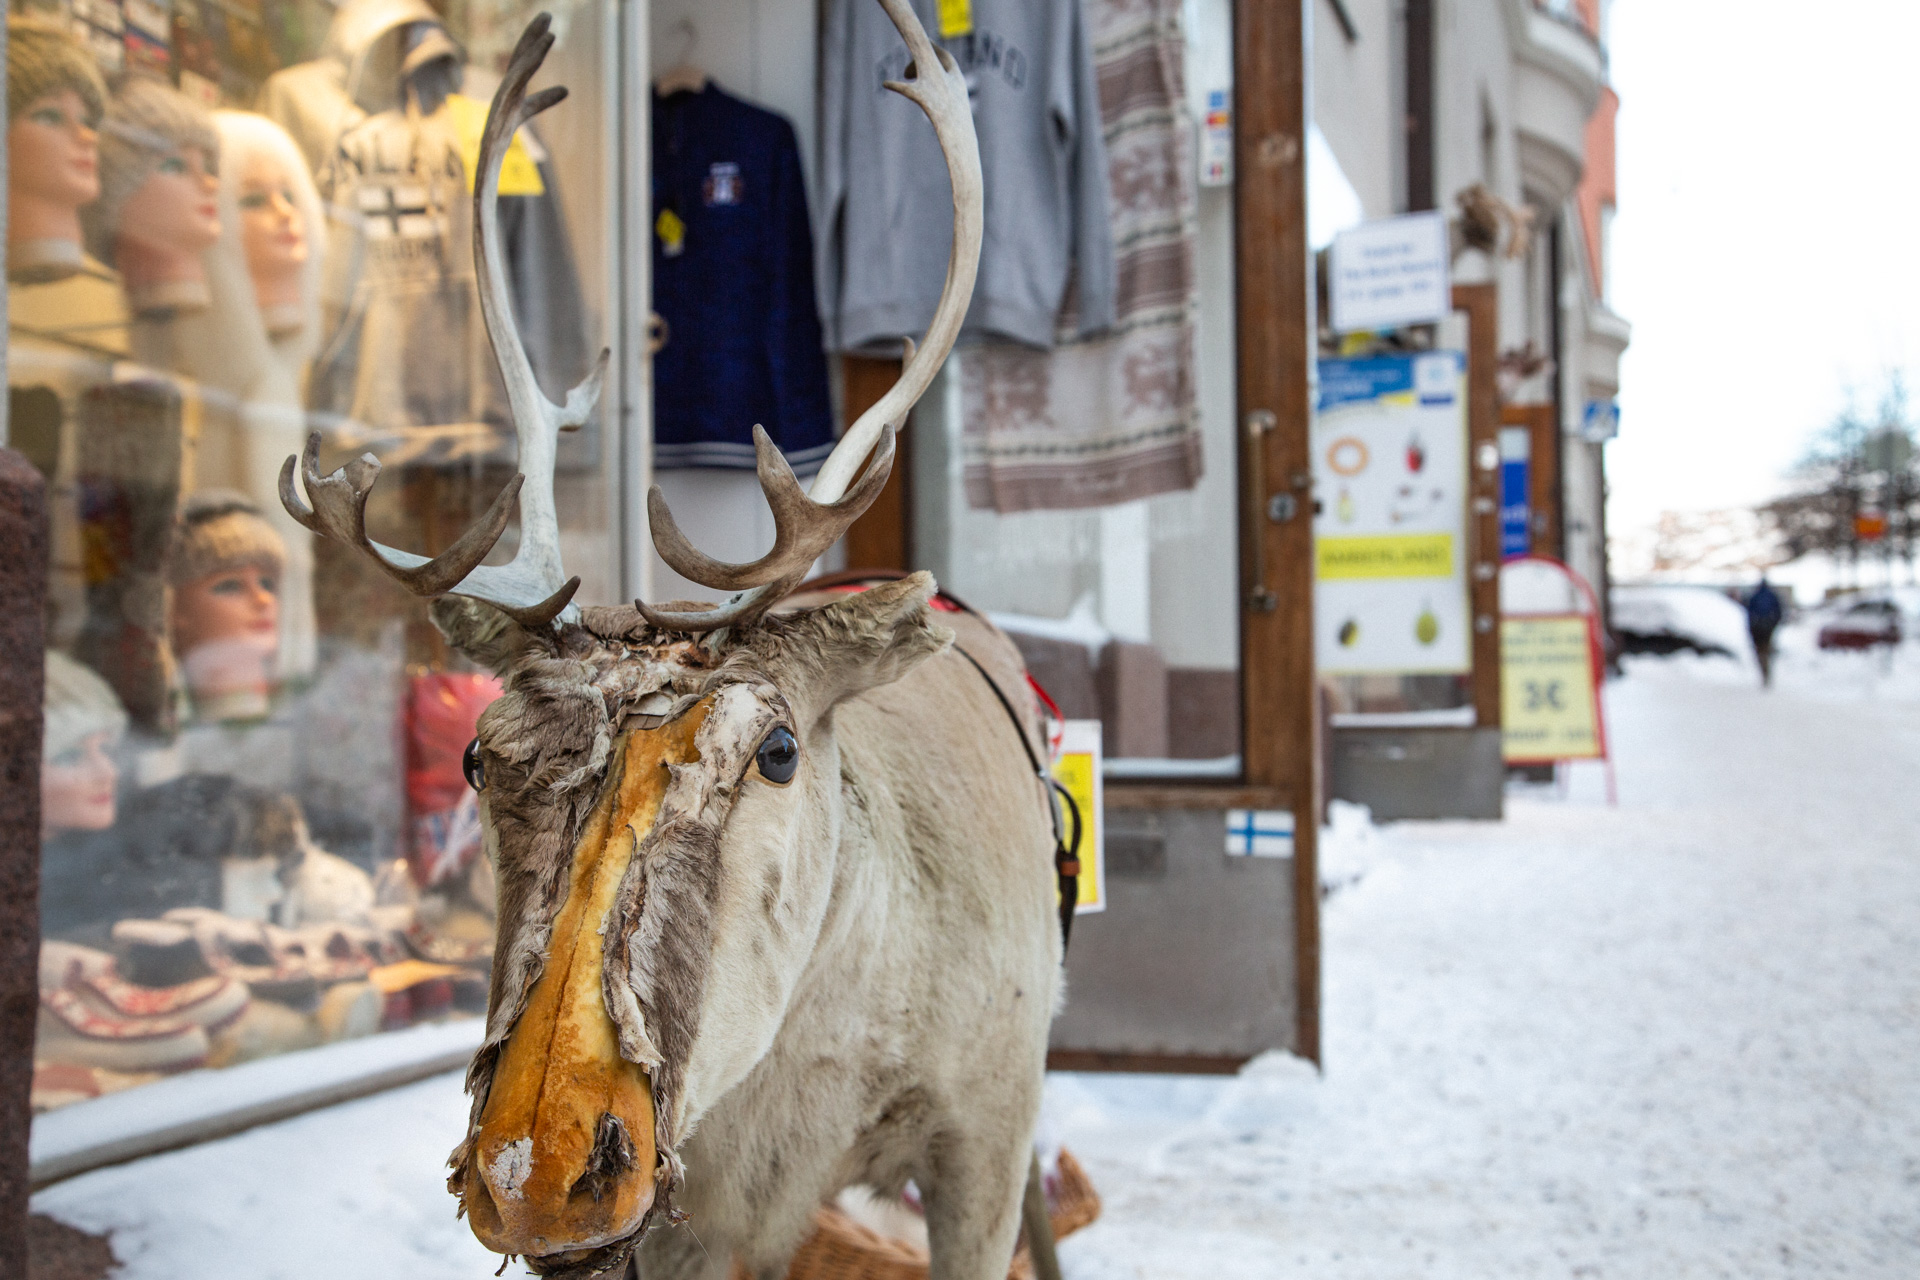 A stuffed reindeer in front of a souvenir shop in Helsinki.